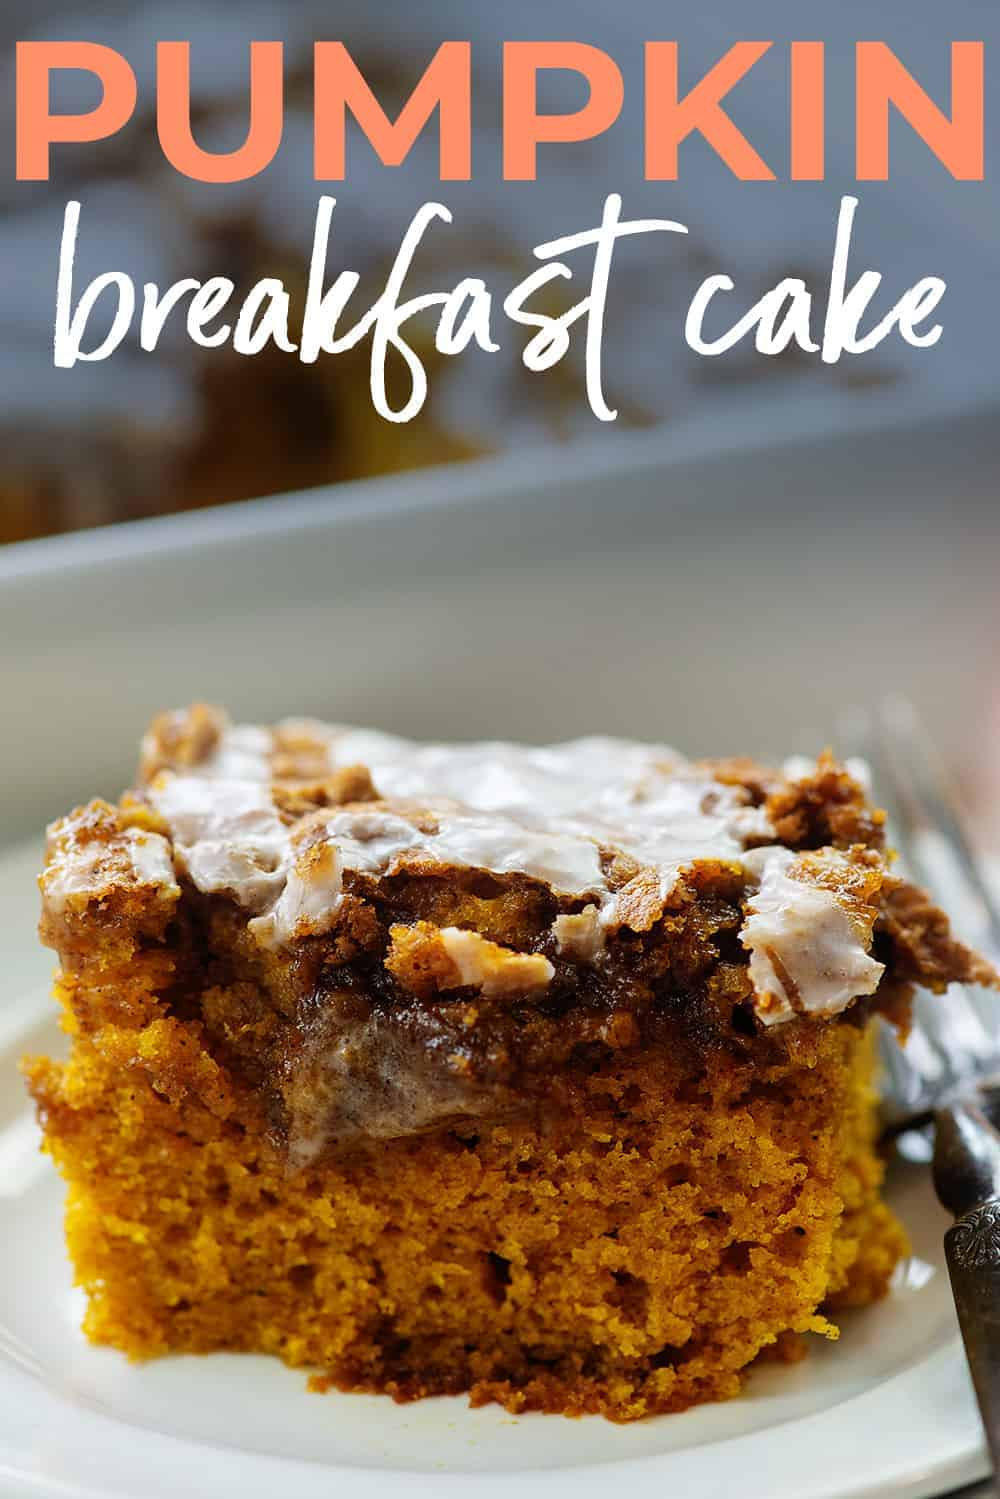 slice of pumpkin cake on white plate with text for Pinterest.